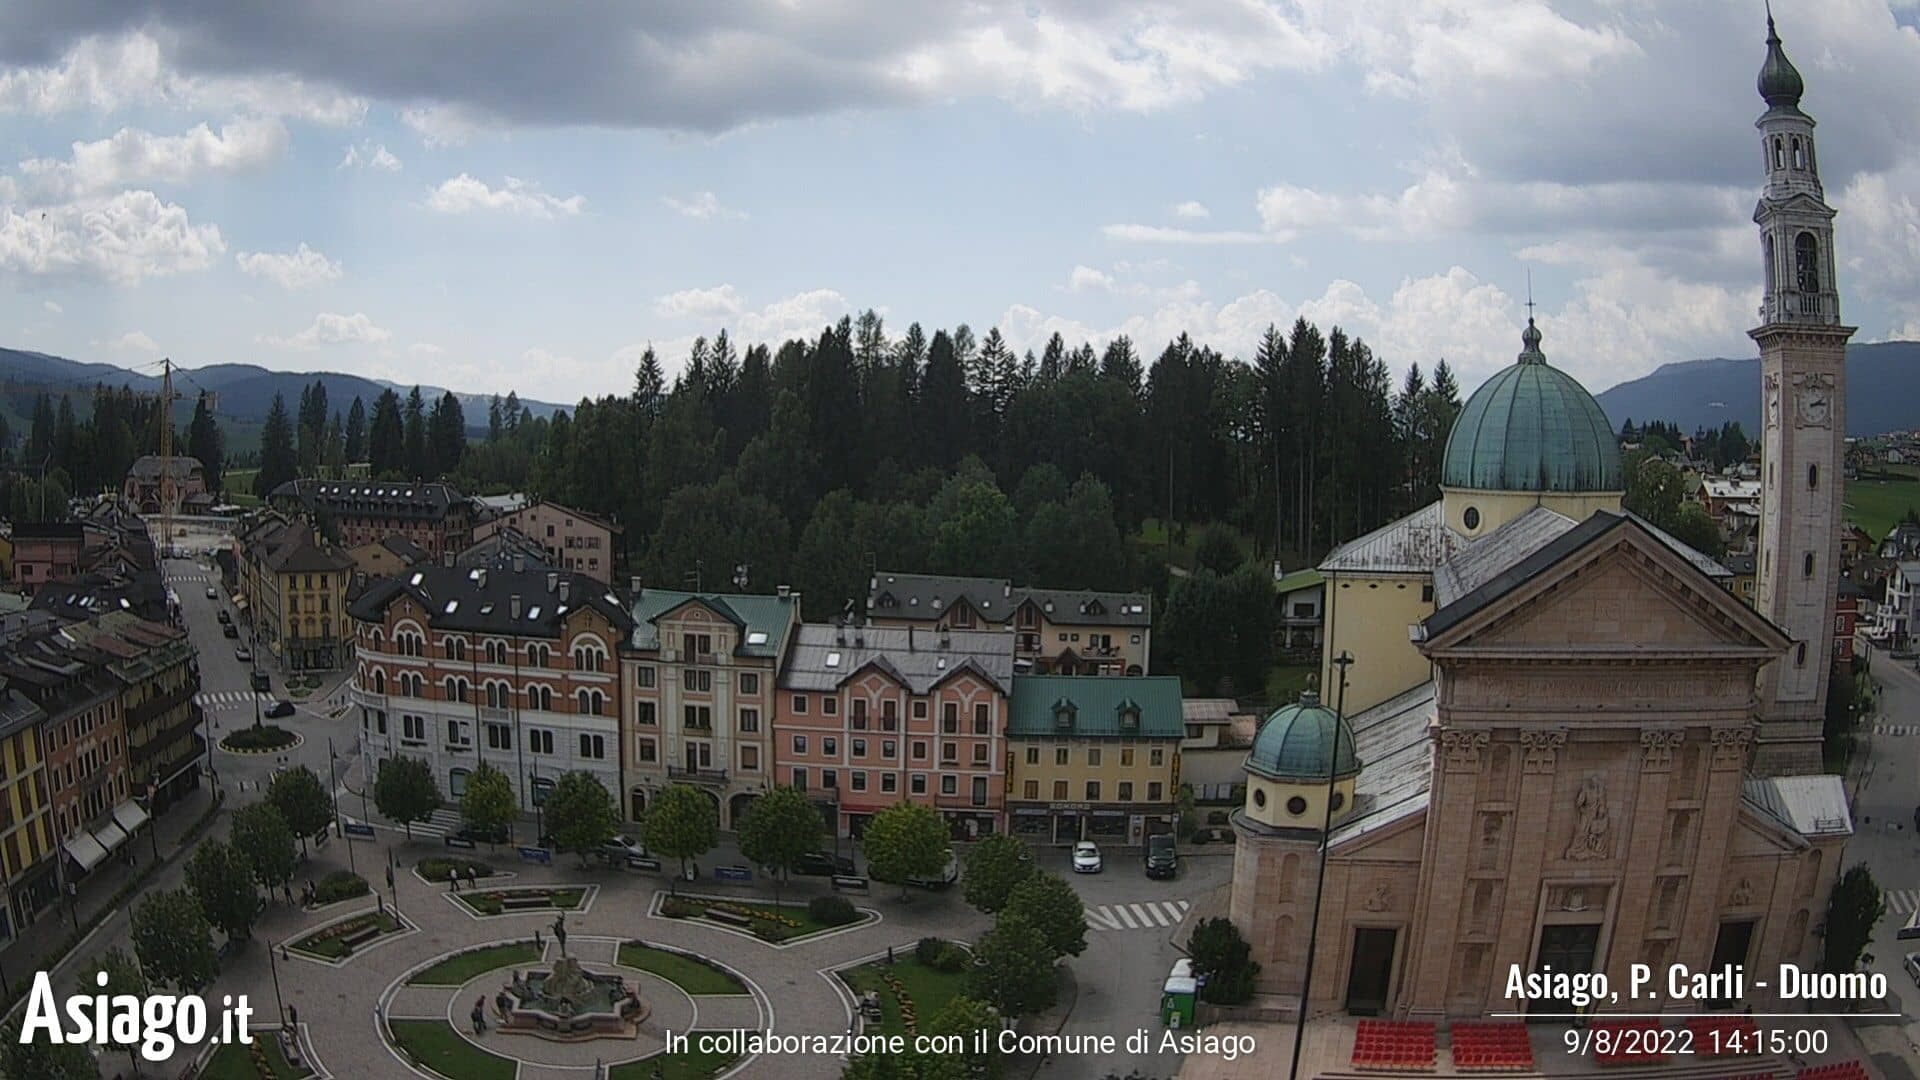 Live webcam on the Duomo and Piazza Carli di Asiago